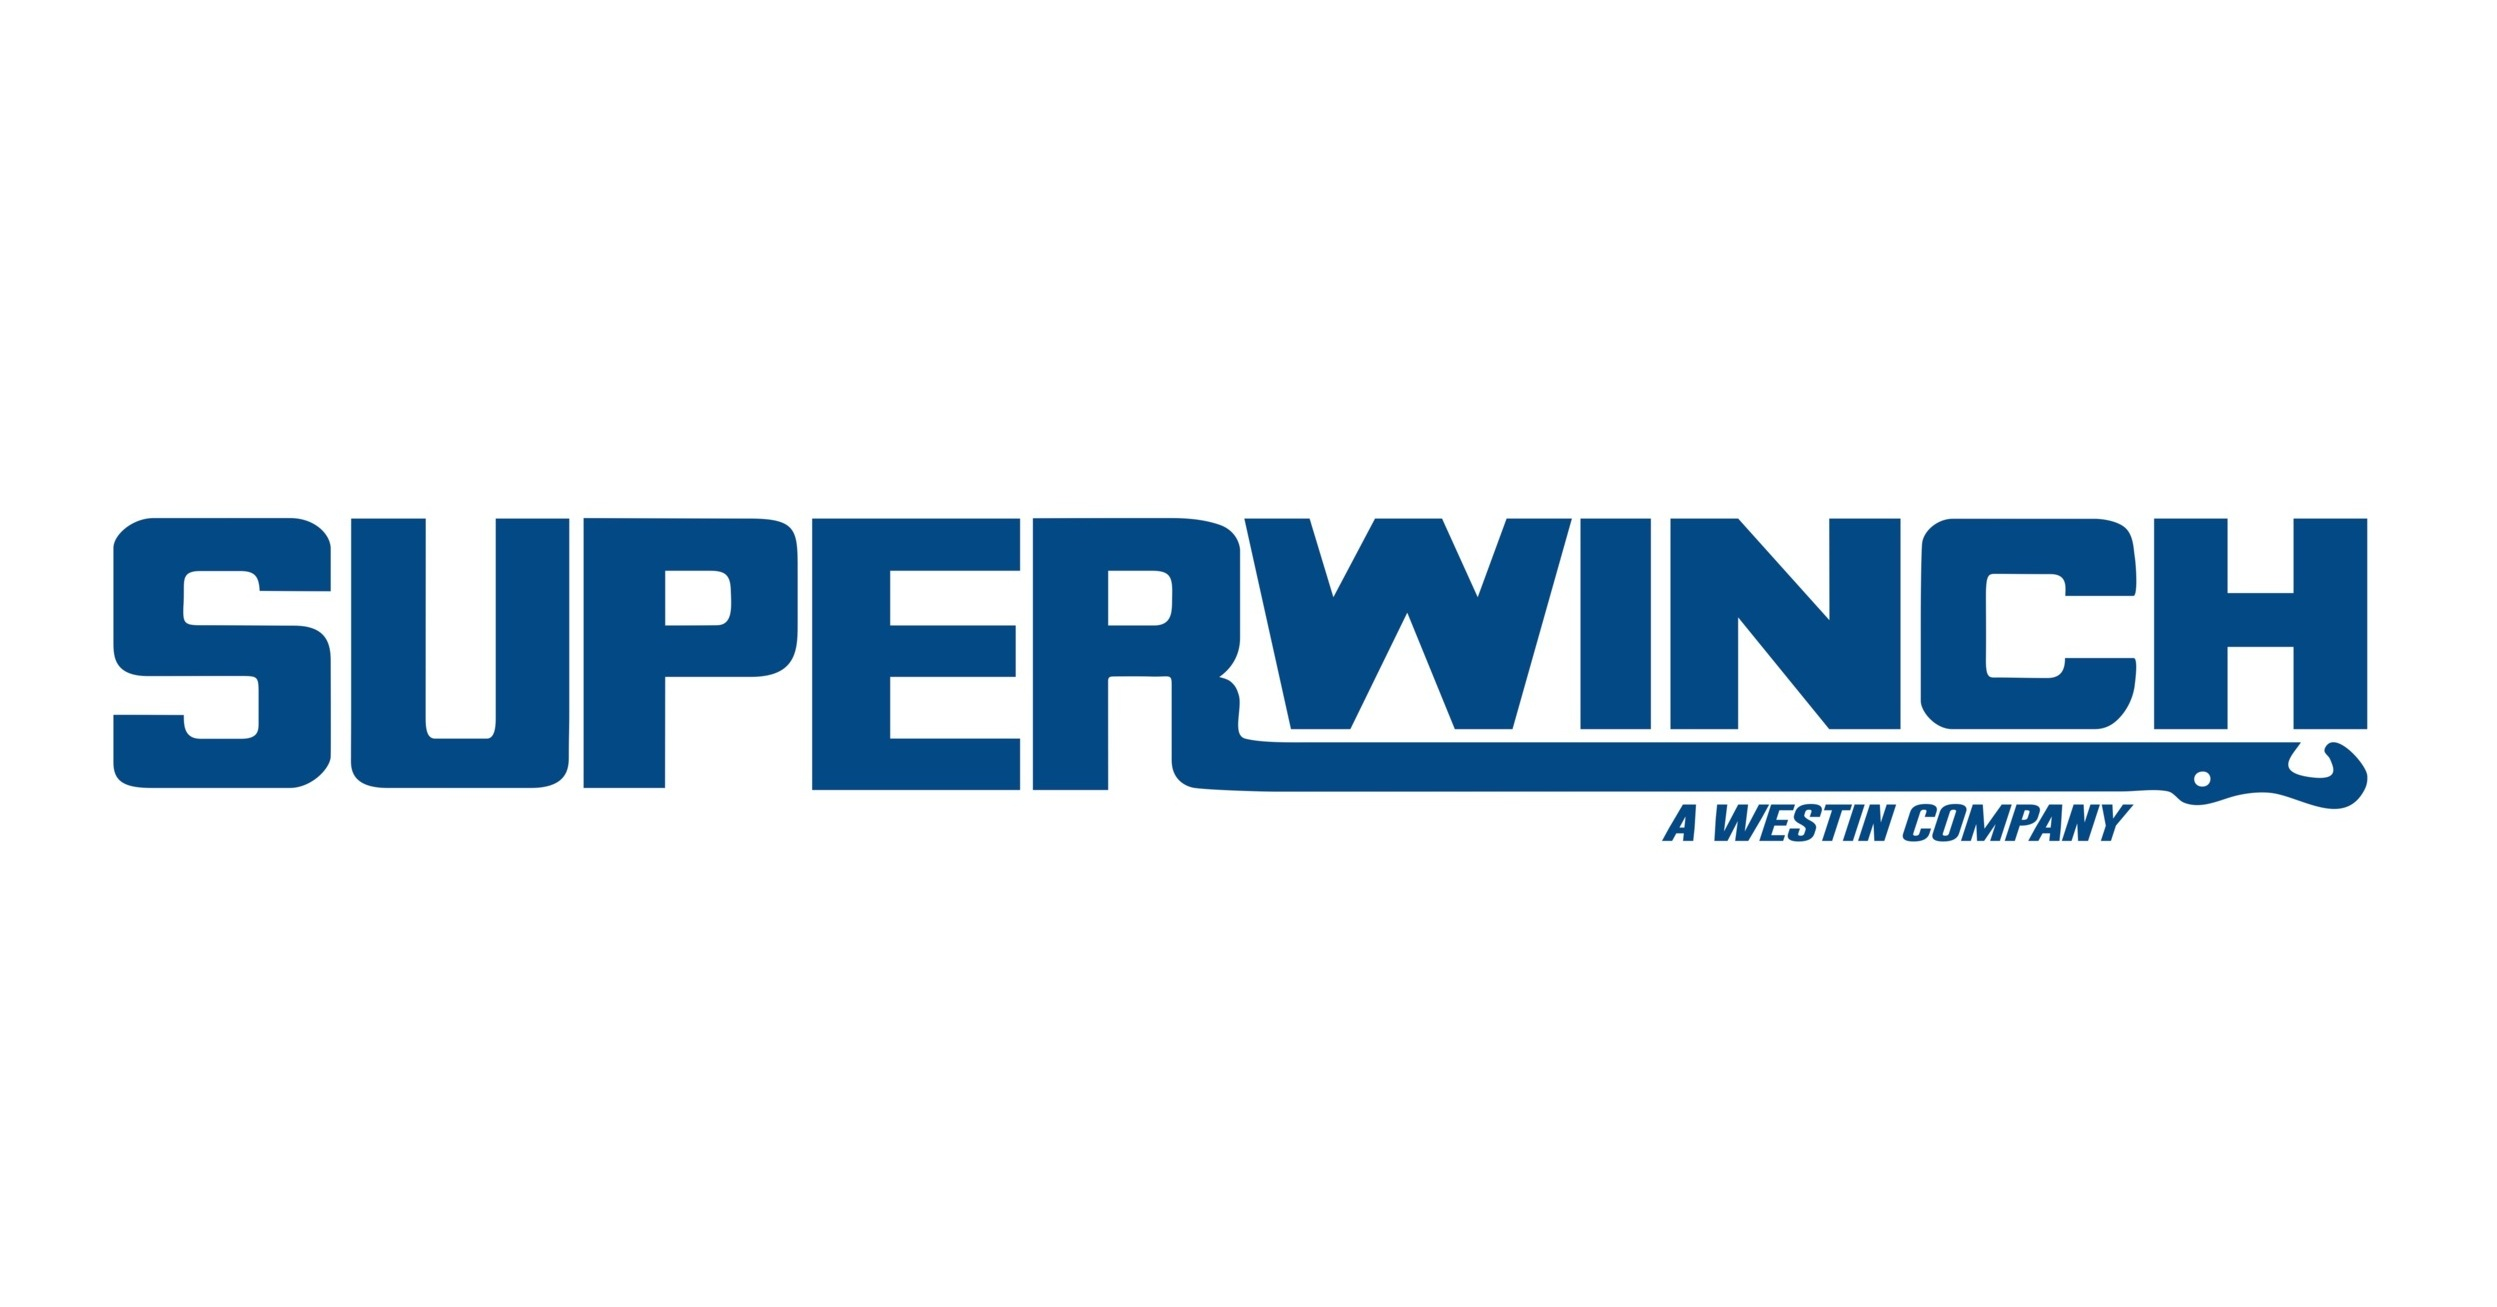 Superwinch_Logo_Westin_Company.jpg